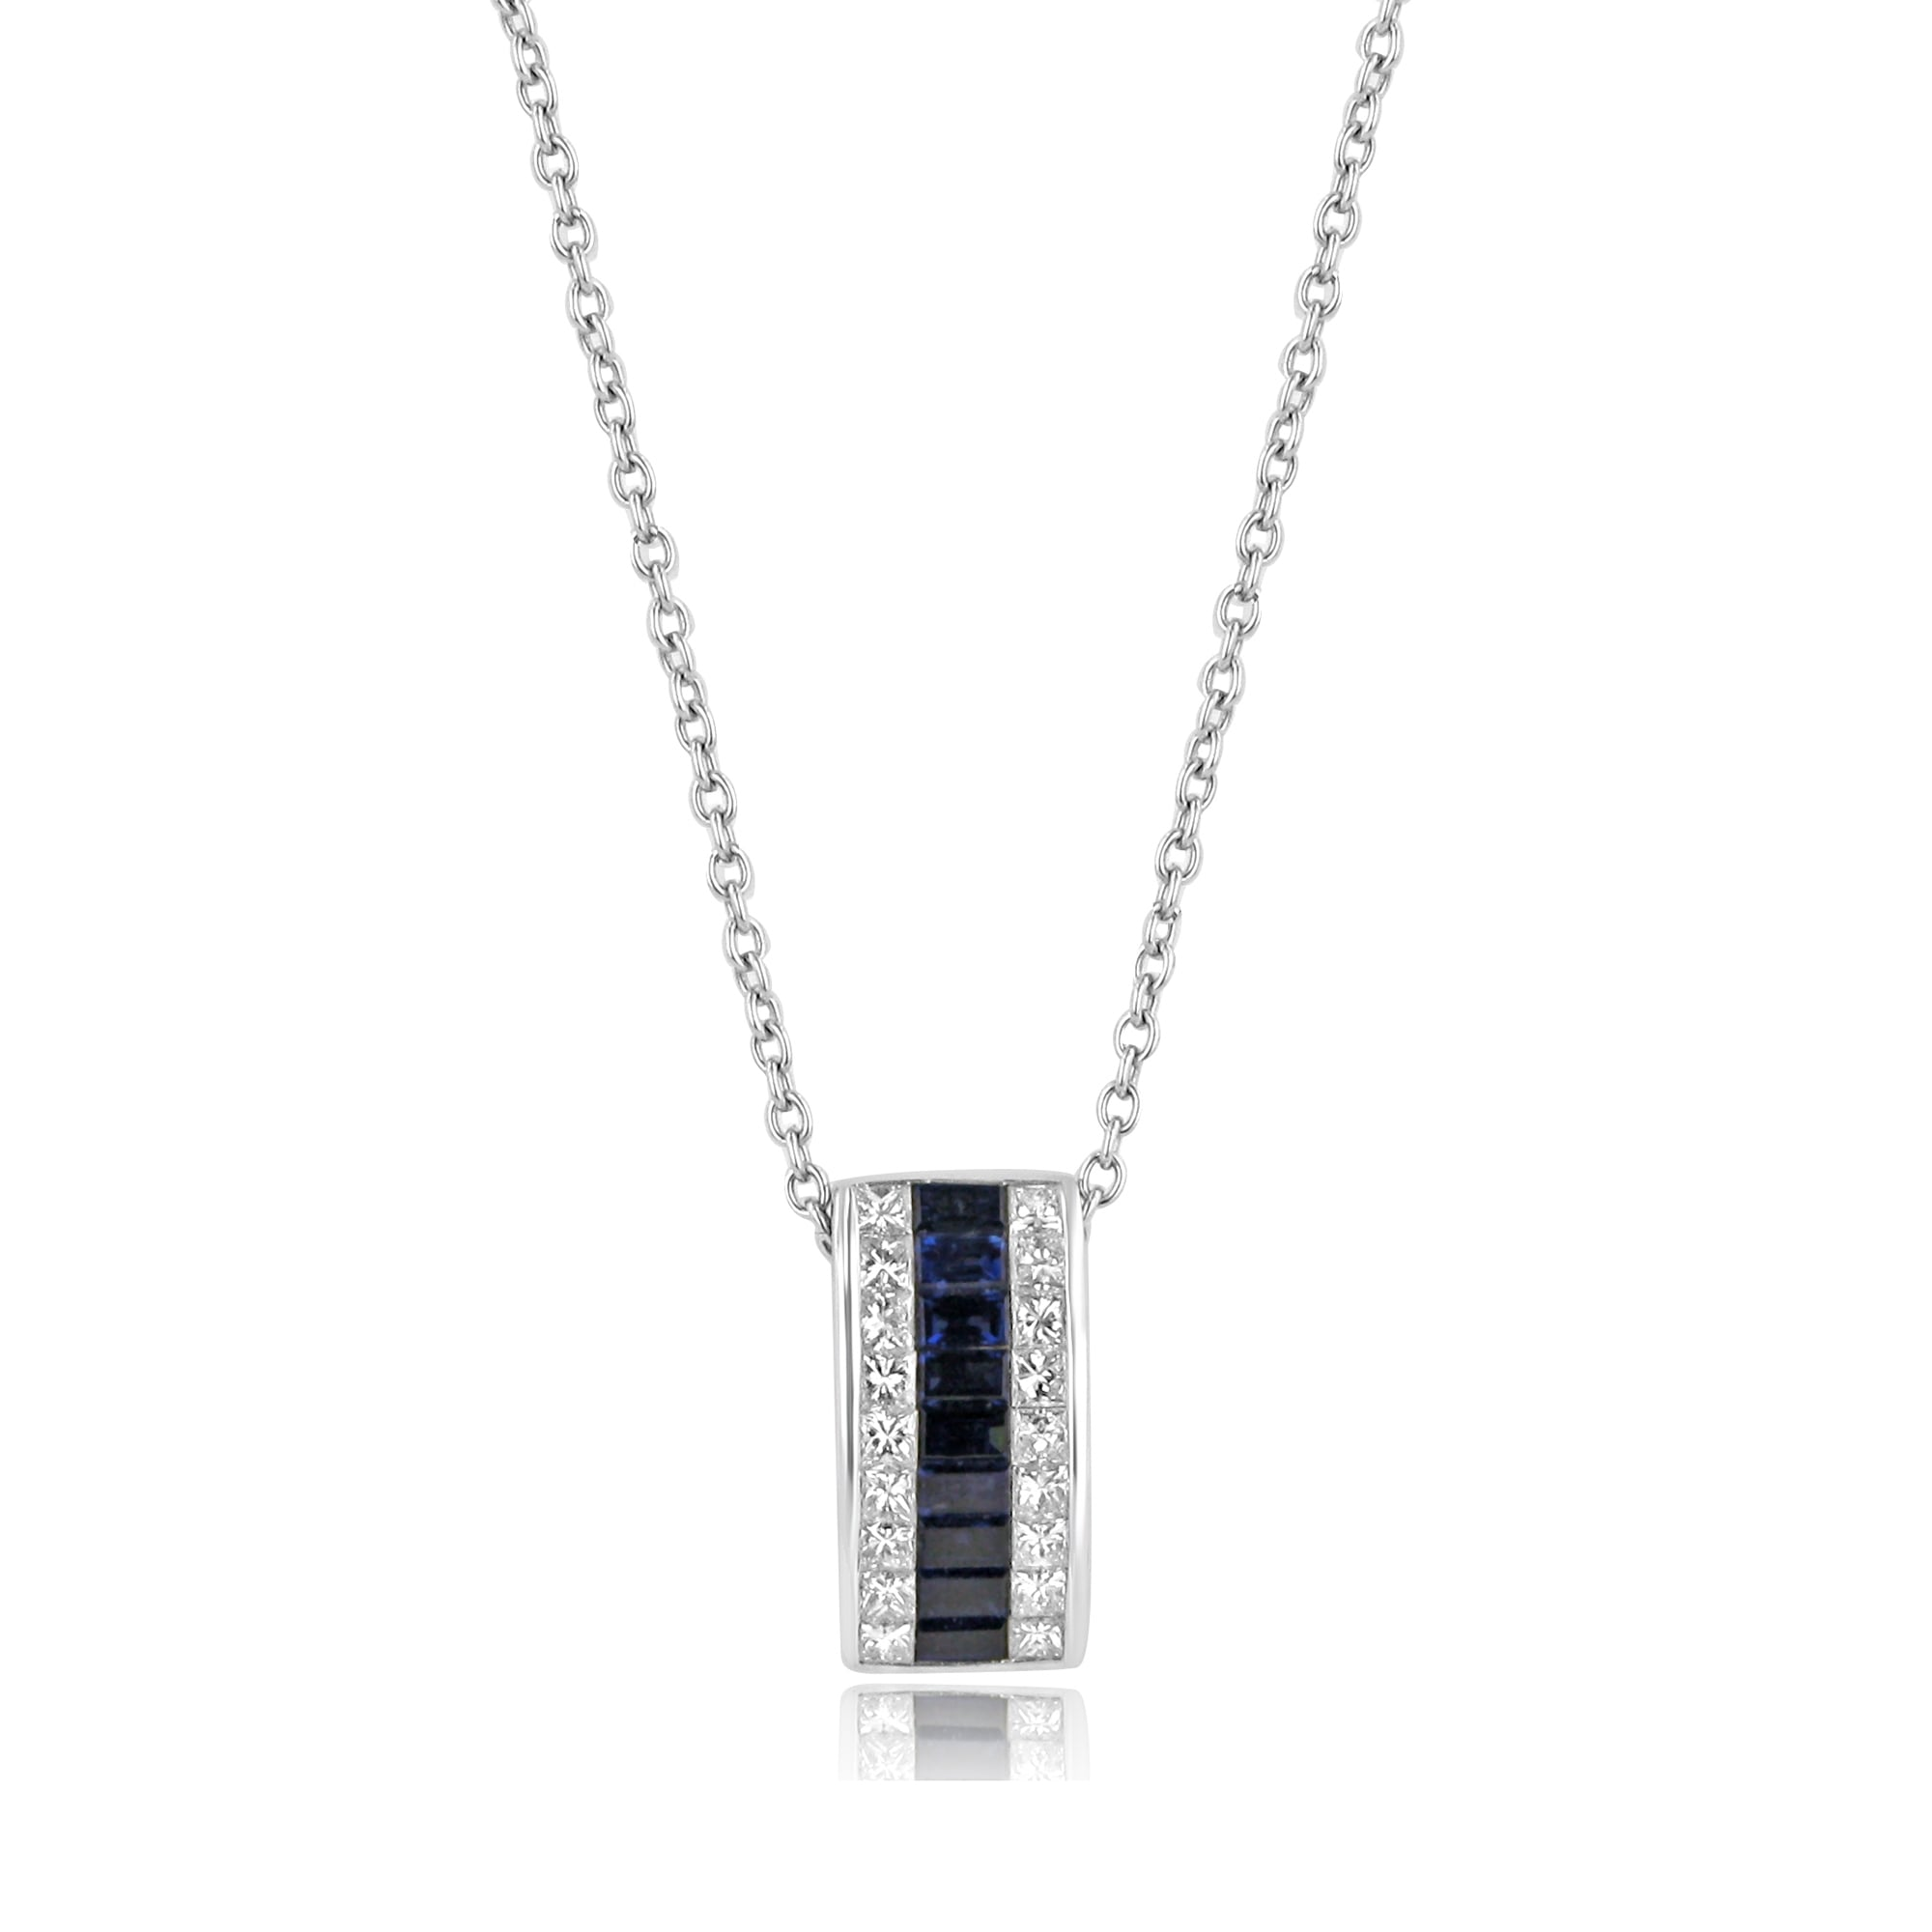 7726e7358c5f45 18ct White Sapphire and Diamond Slider Necklace - Womens from Avanti of  Ashbourne Ltd UK